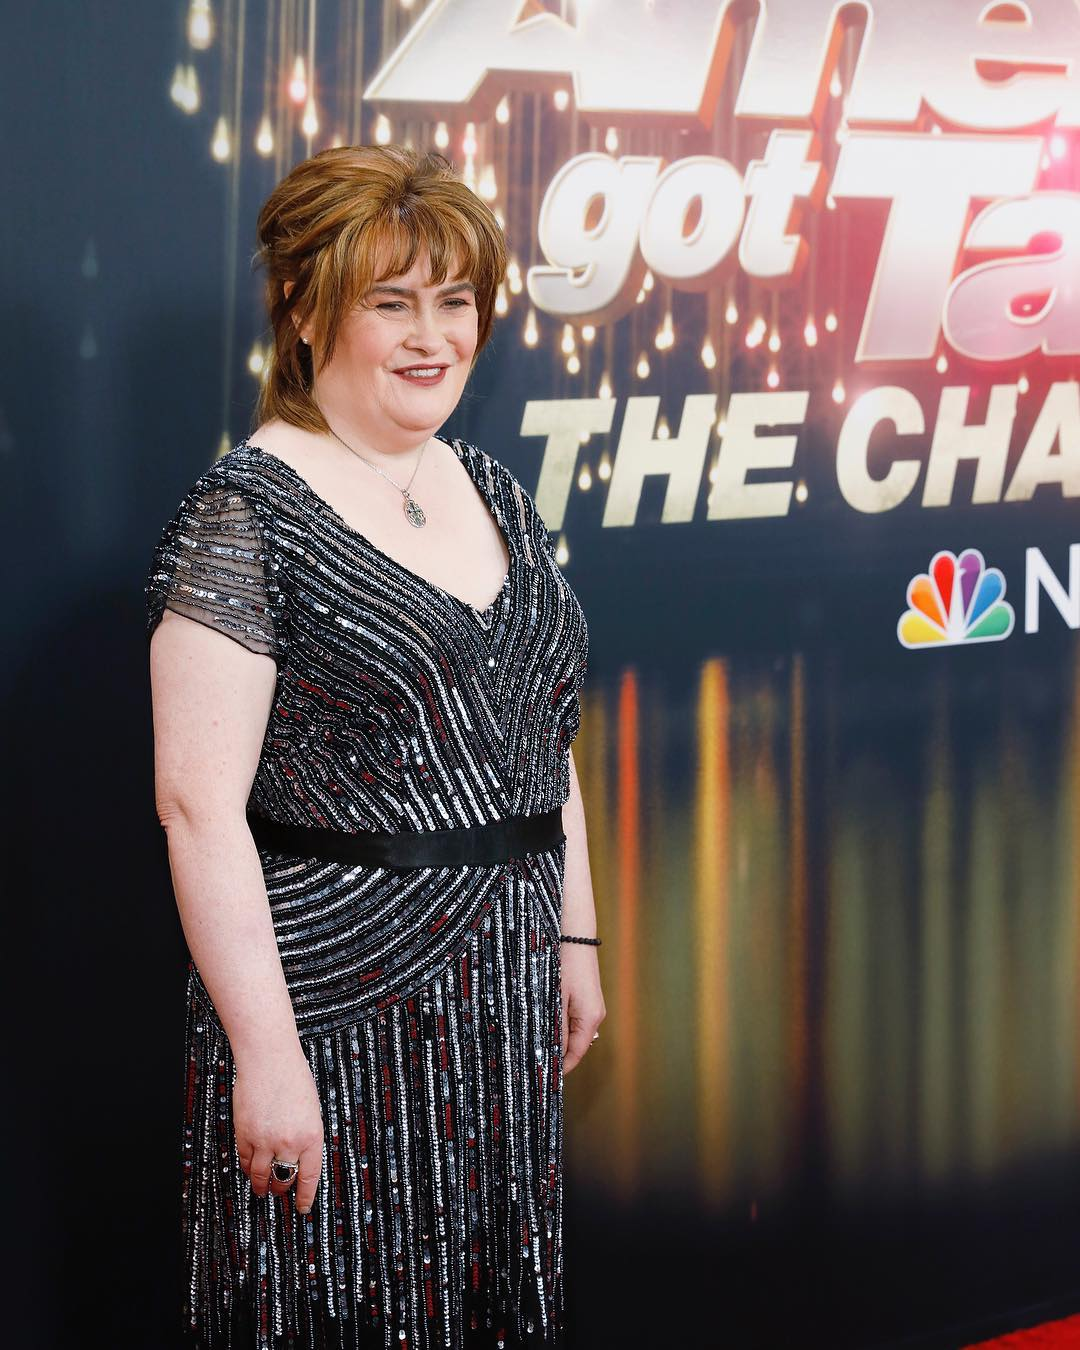 Susan Boyle wearing shiny dress on the set of America's Got Talent: The Champions